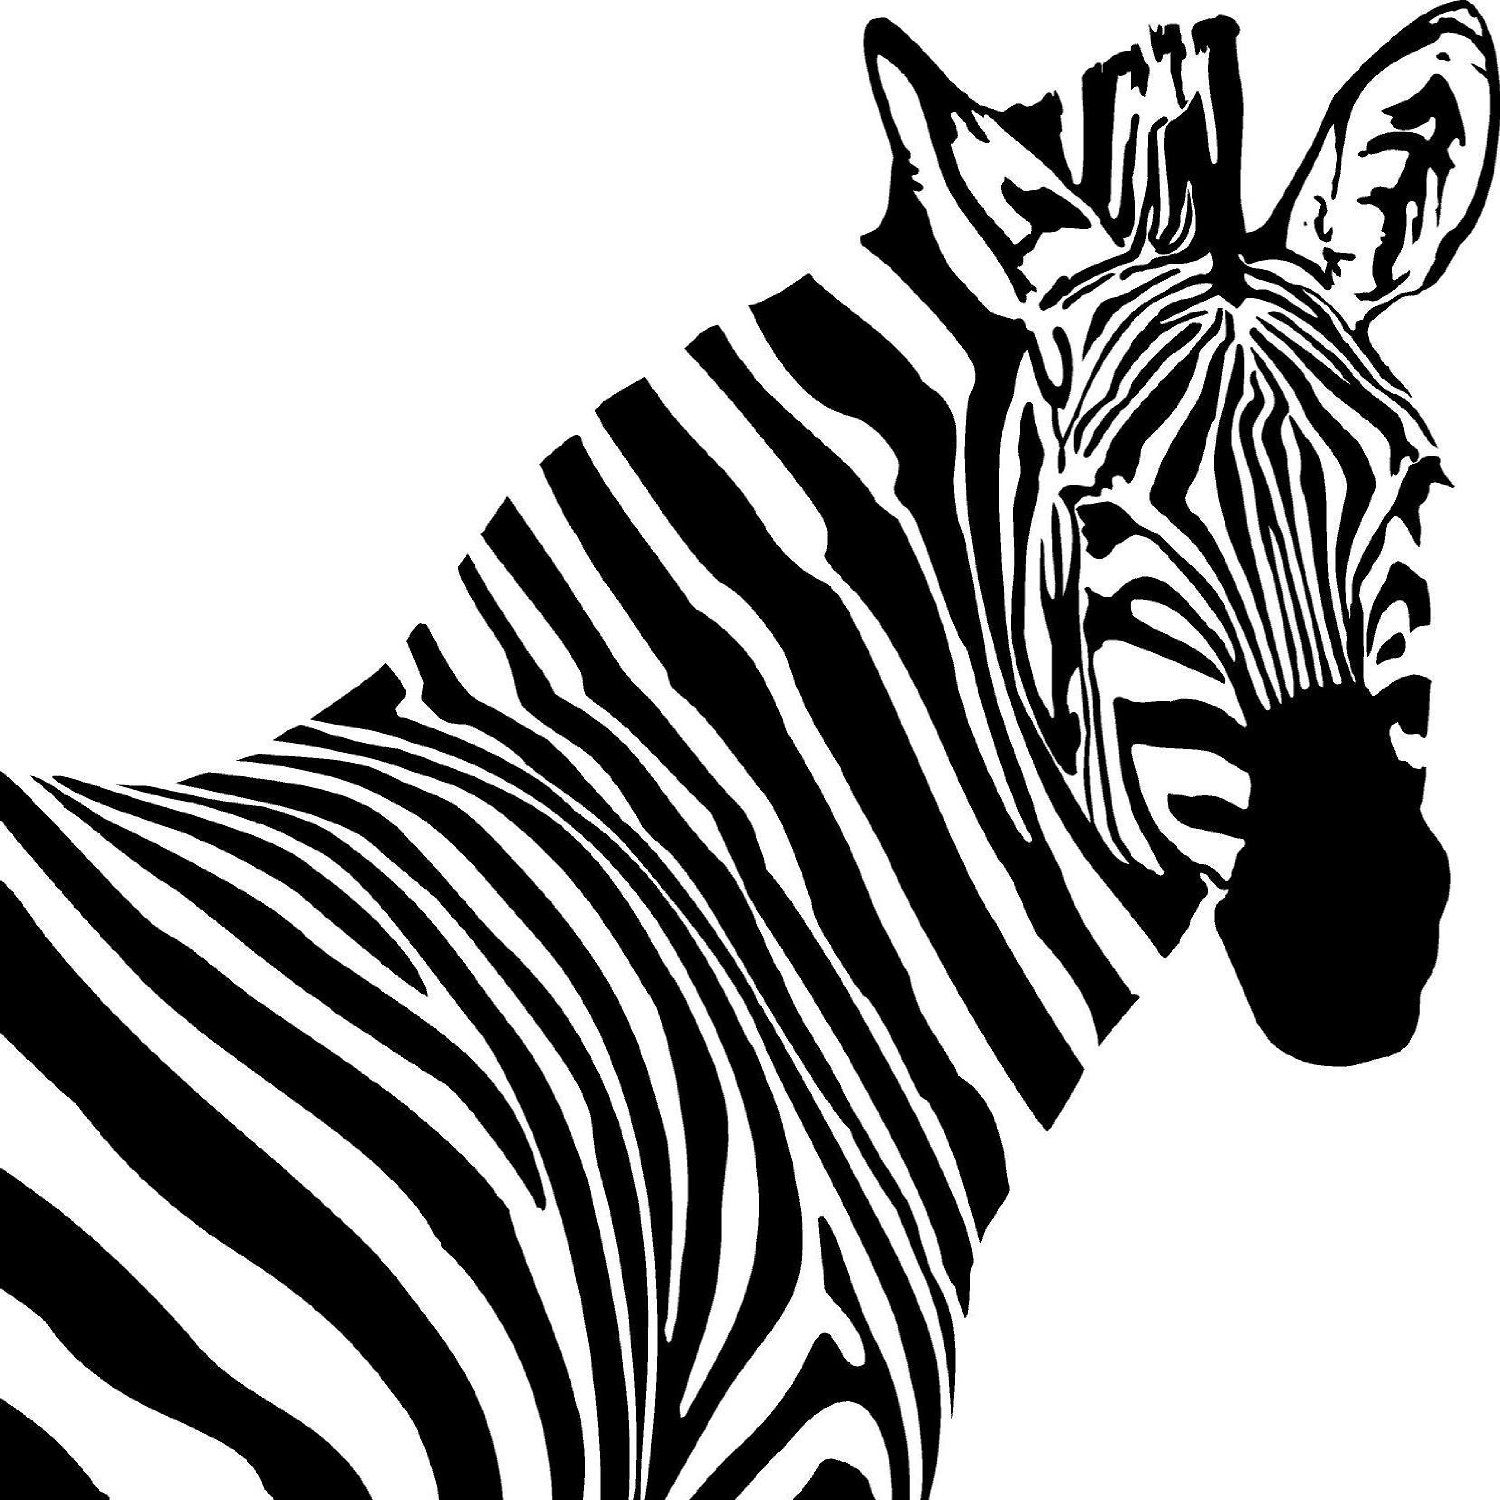 Zebra silhouette - Google Search | Silhouette | Pinterest